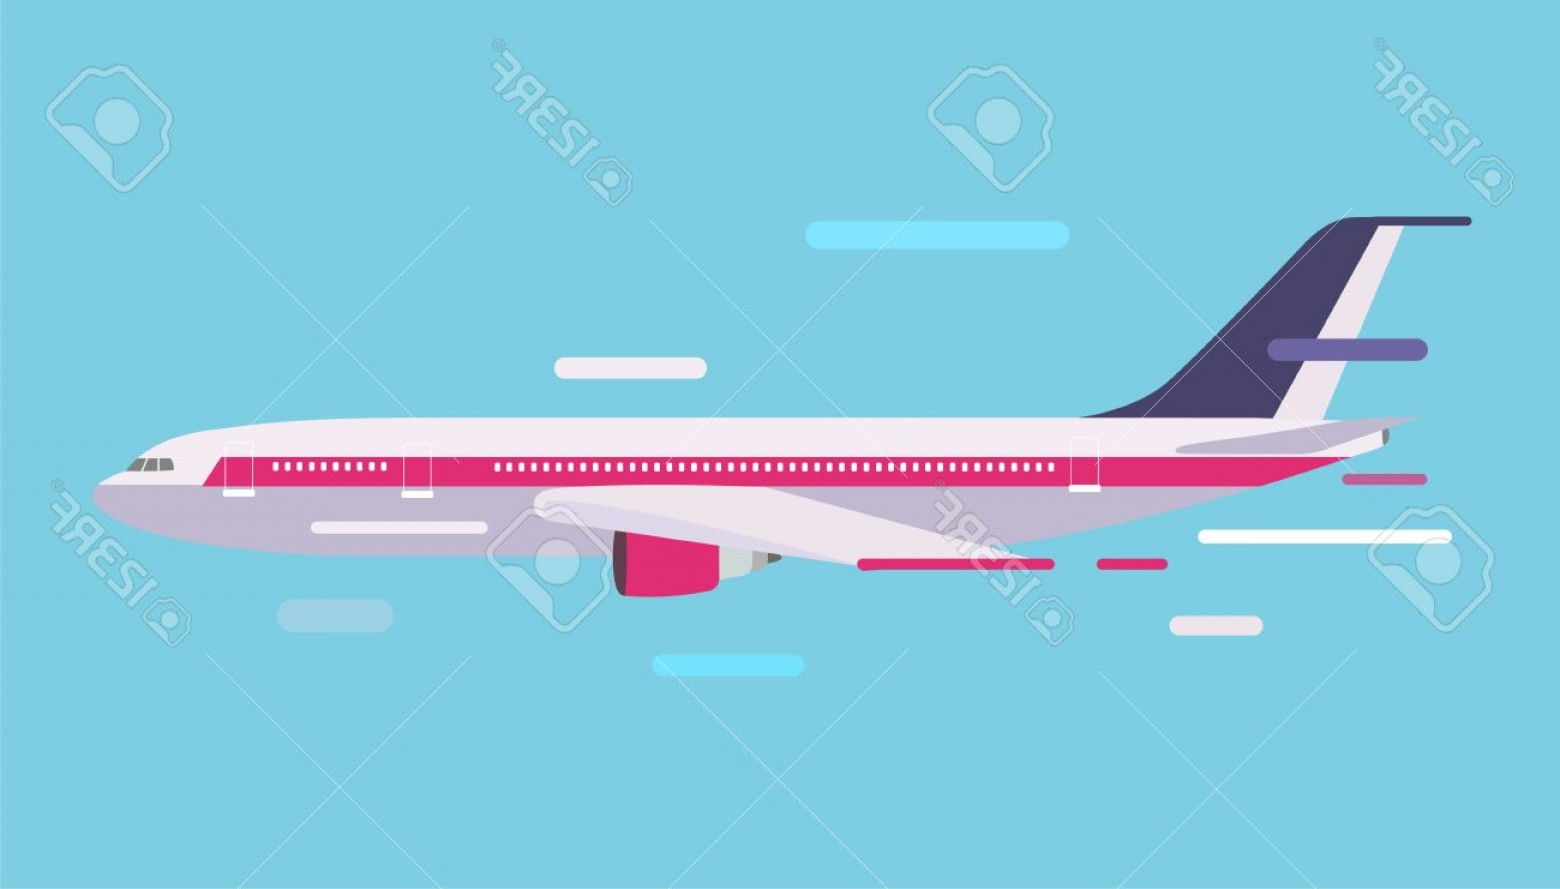 Airplane Travel Vectors: Photostock Vector Civil Aviation Travel Passenger Air Plane Vector Illustration Civil Commercial Airplane Flying Vecto